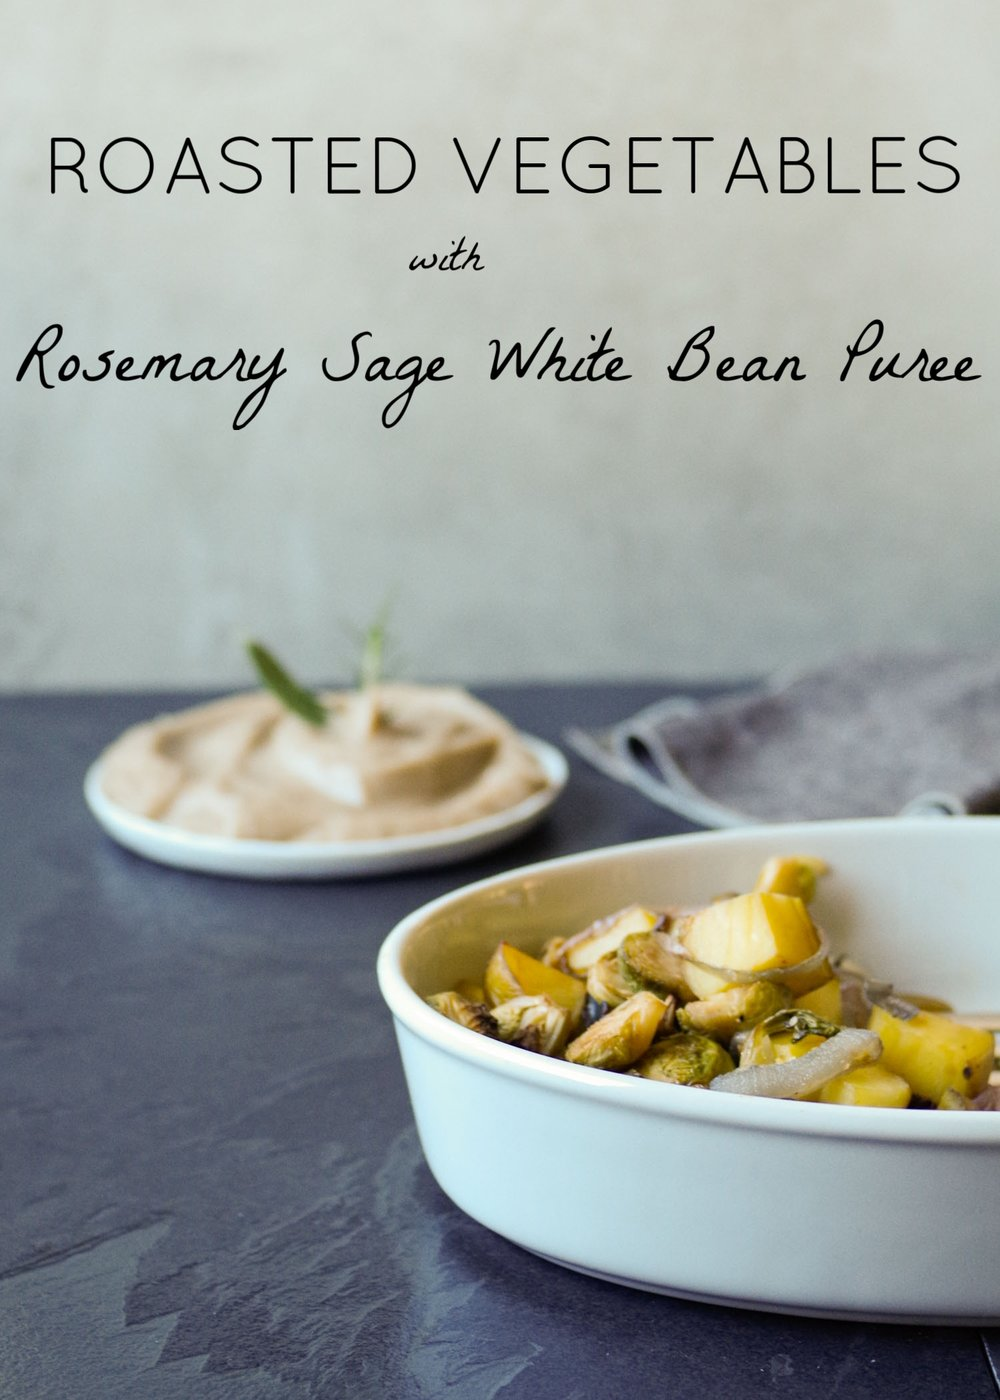 Roasted Vegetables with Rosemary Sage White Bean Puree, by Beautiful Ingredient.